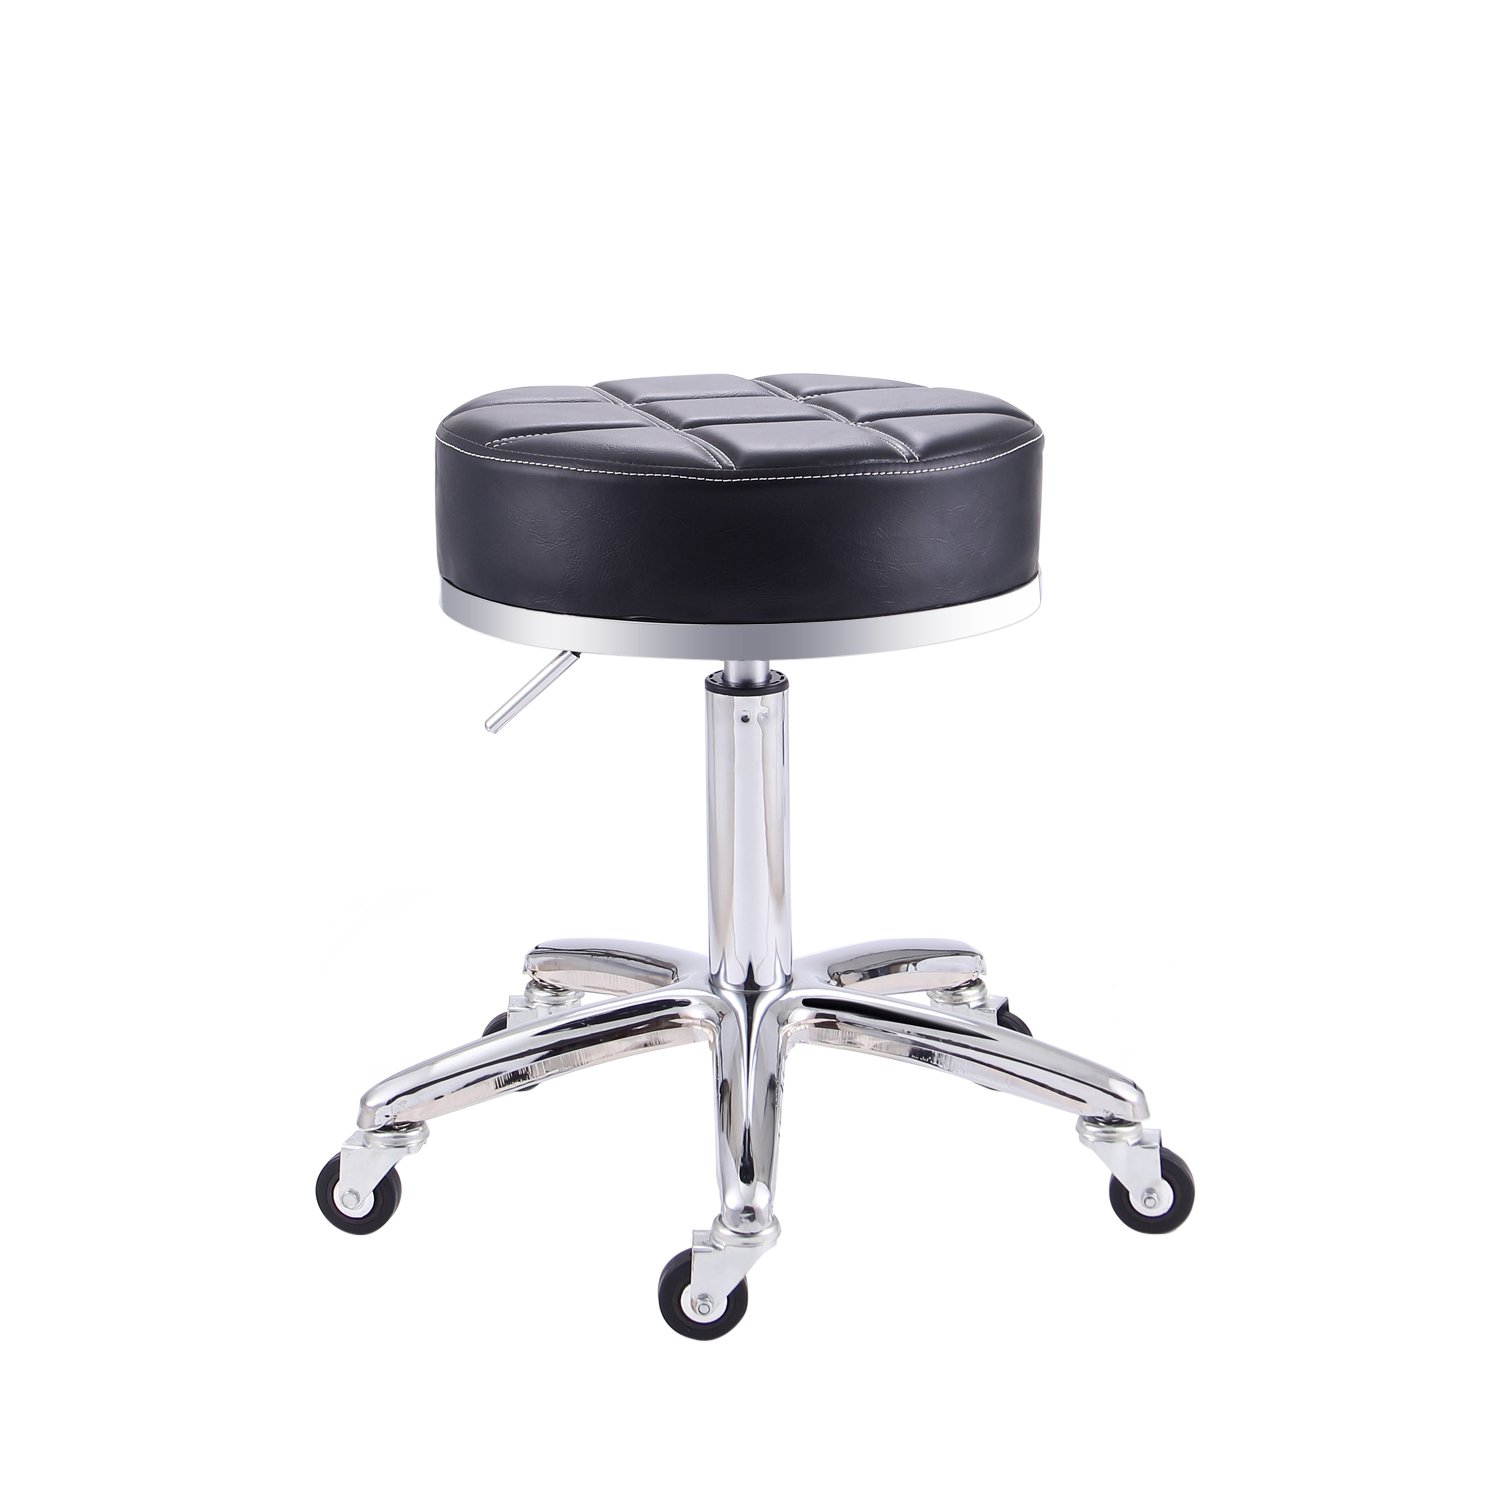 Rfiver Modern PU Leather Relief Hydraulic Adjustable Swivel Drafting Stool Chair for Salon Spa Massage Kitchen Office Shop Club Bar in Black SC1004-1 by Rfiver (Image #6)